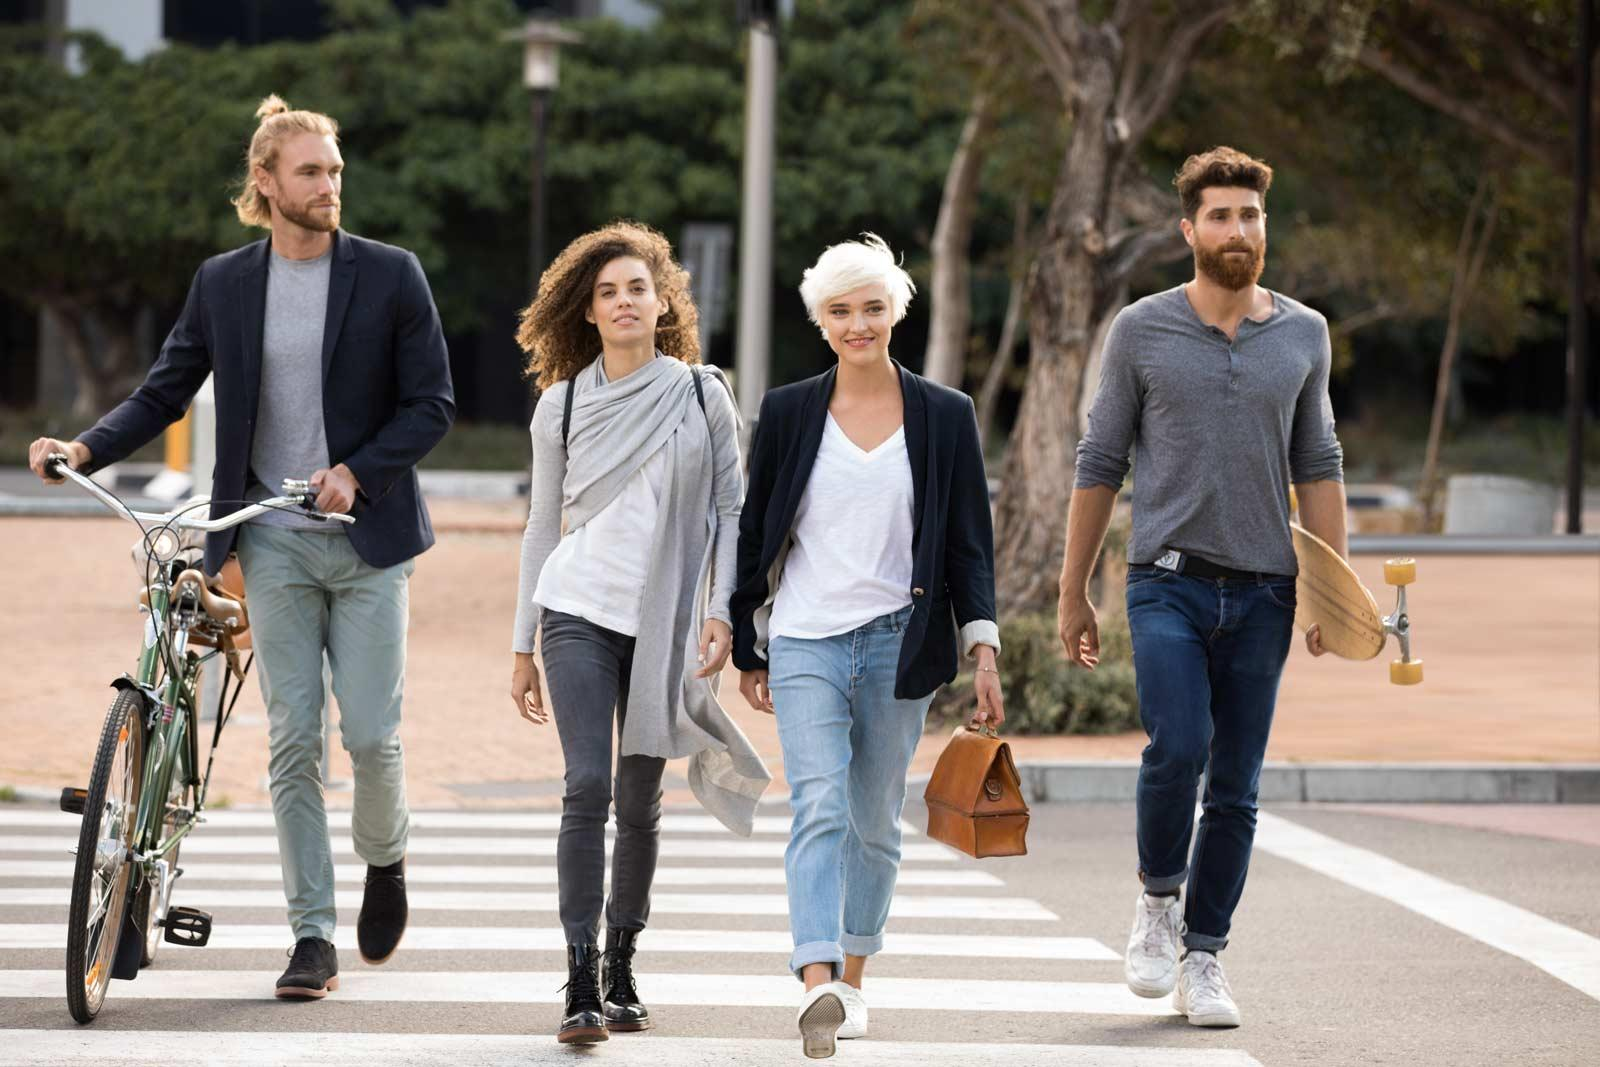 group-of-young-adults-walking-street